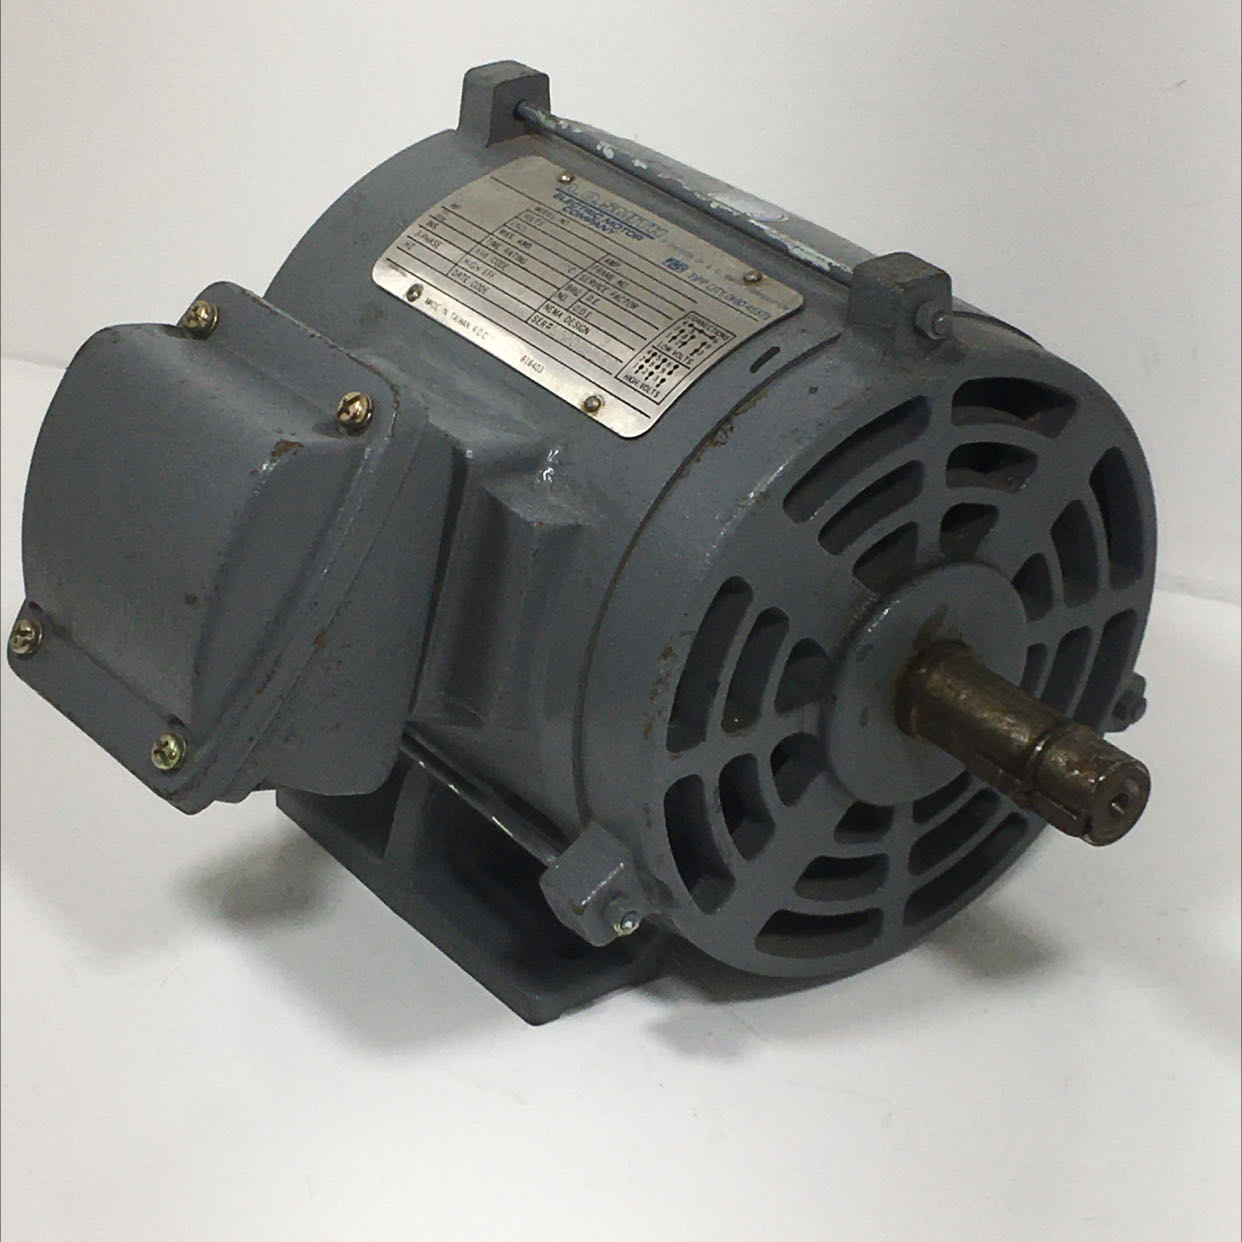 A.O. Smith 0T00152 Electric Motor 1.5 HP 3 Phase 208-230/460